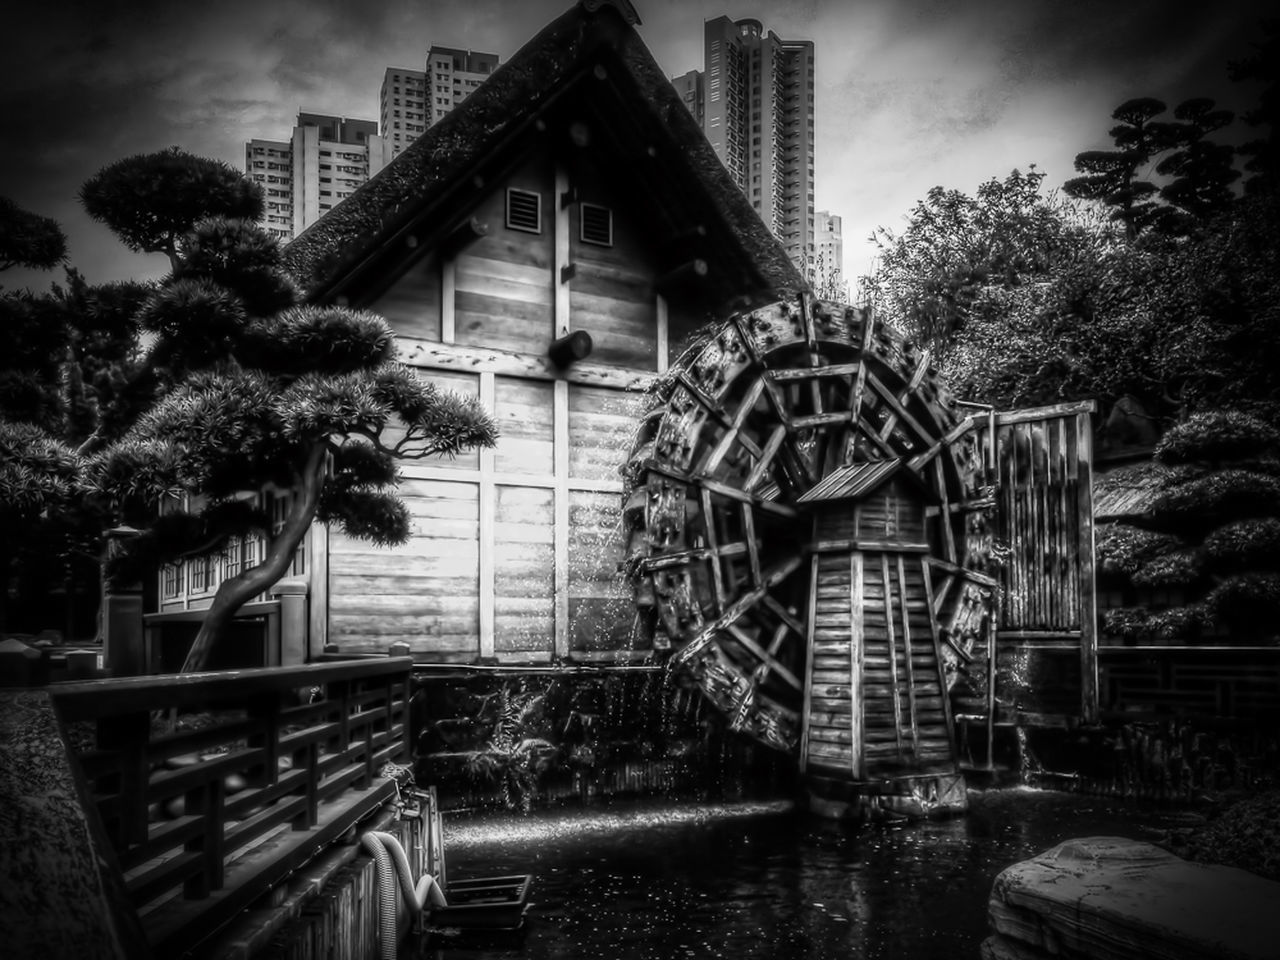 Iphonephotography Hdrphotography Black And White Photography HDR Tonemapping Blackandwhite Contrast Watermill